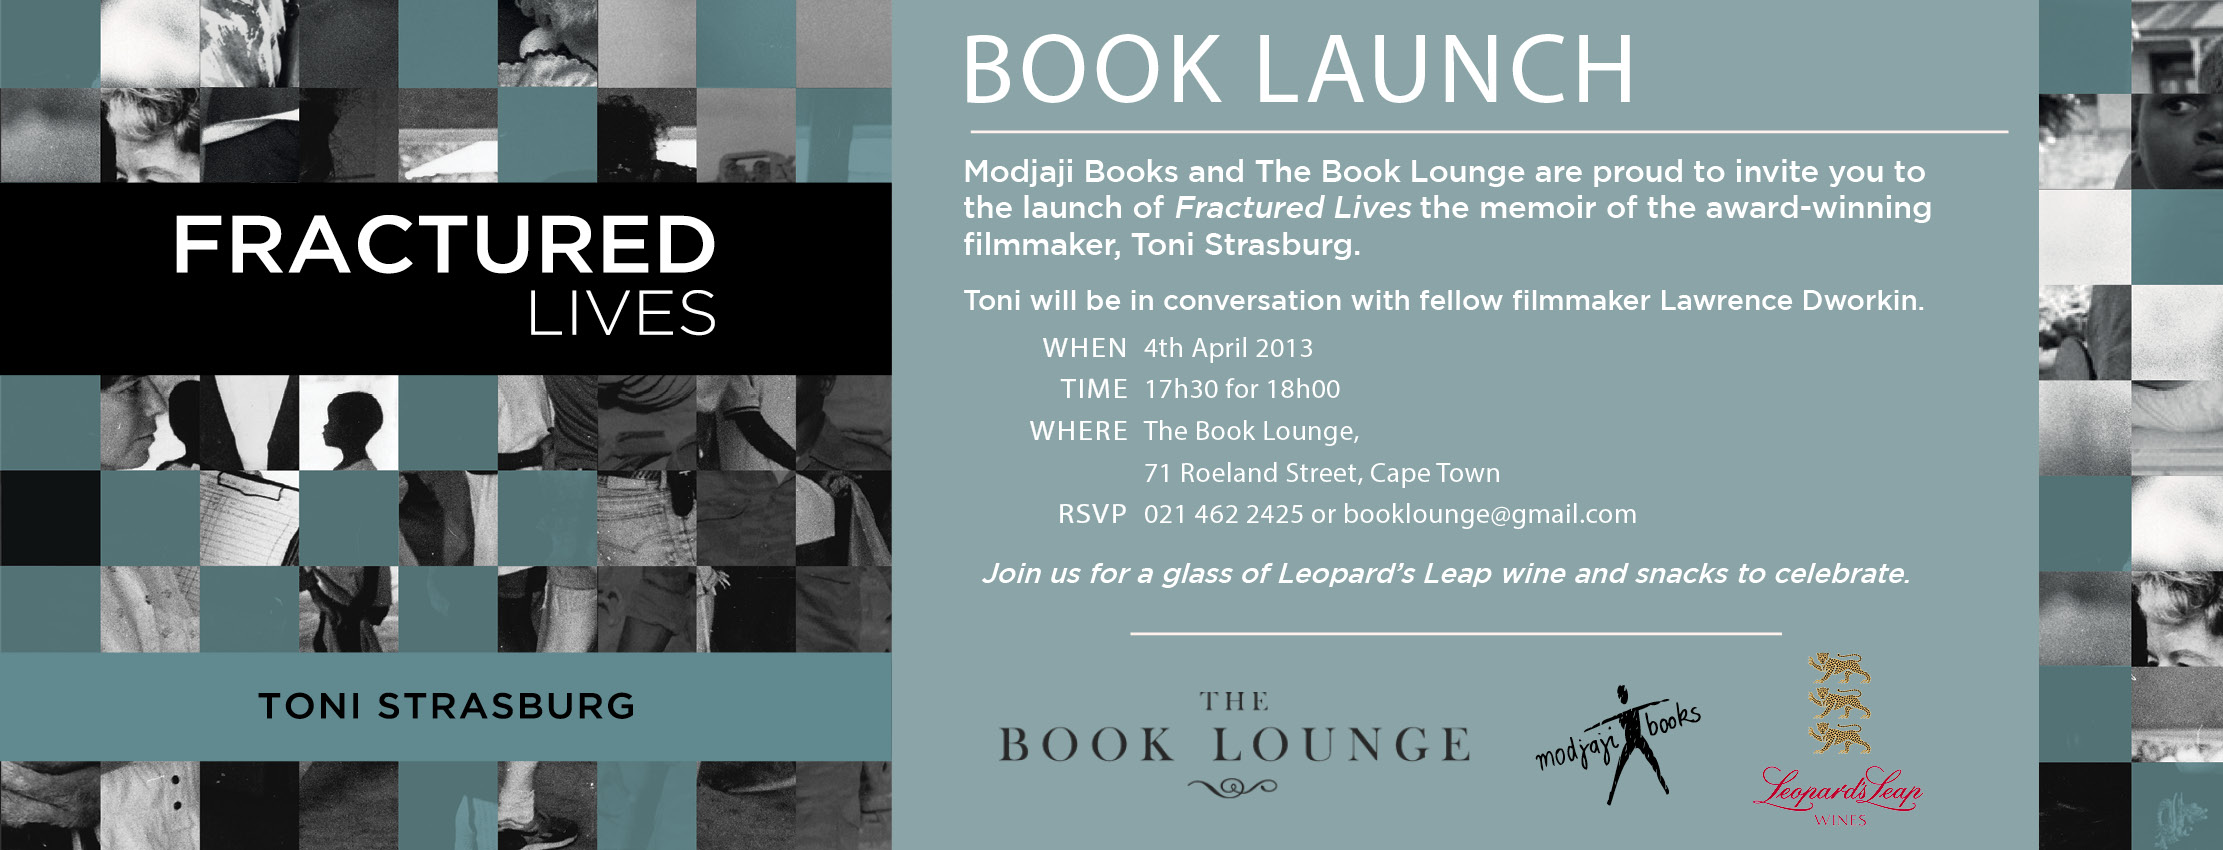 Launch invite for Toni Strasburg's Fractured Lives